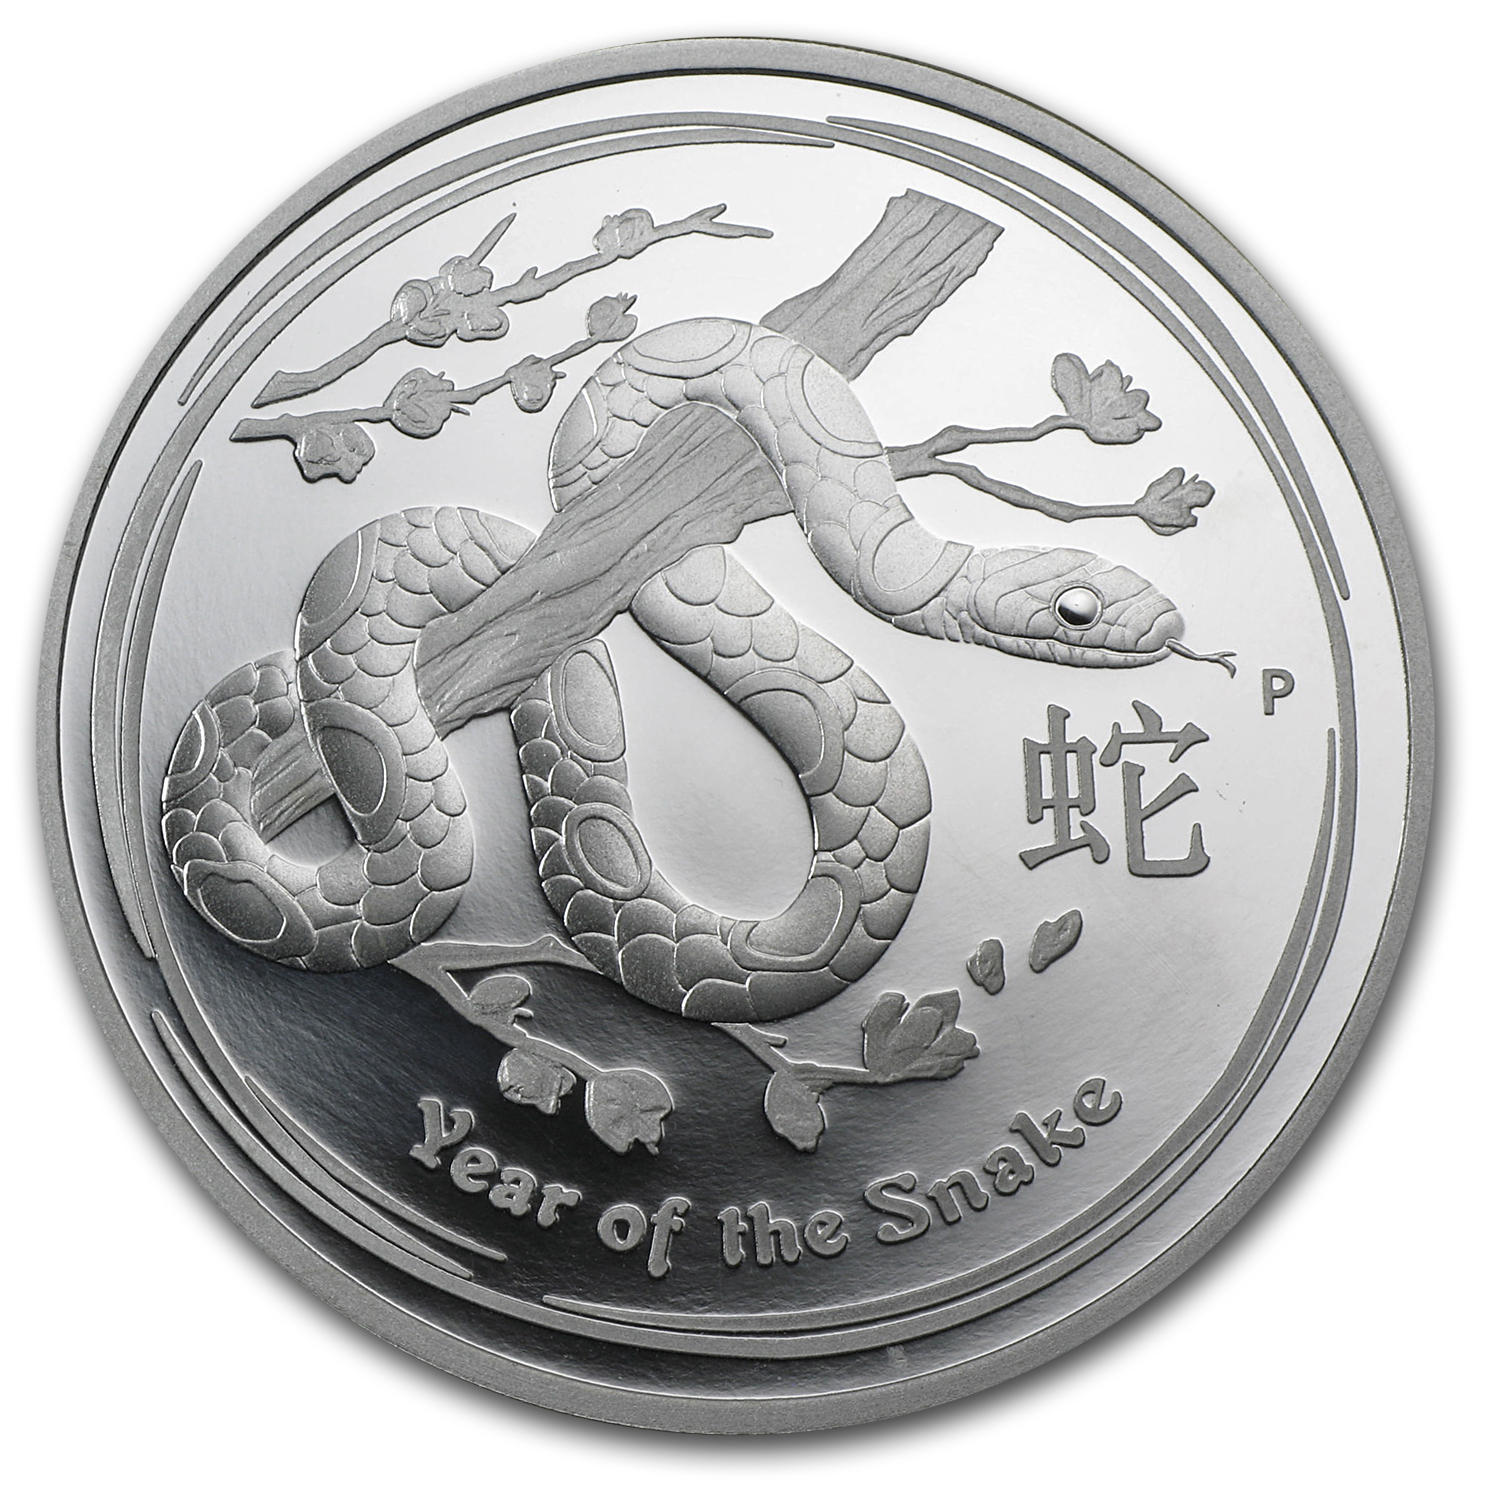 2013 Australia 1 oz Silver Year of the Snake Proof